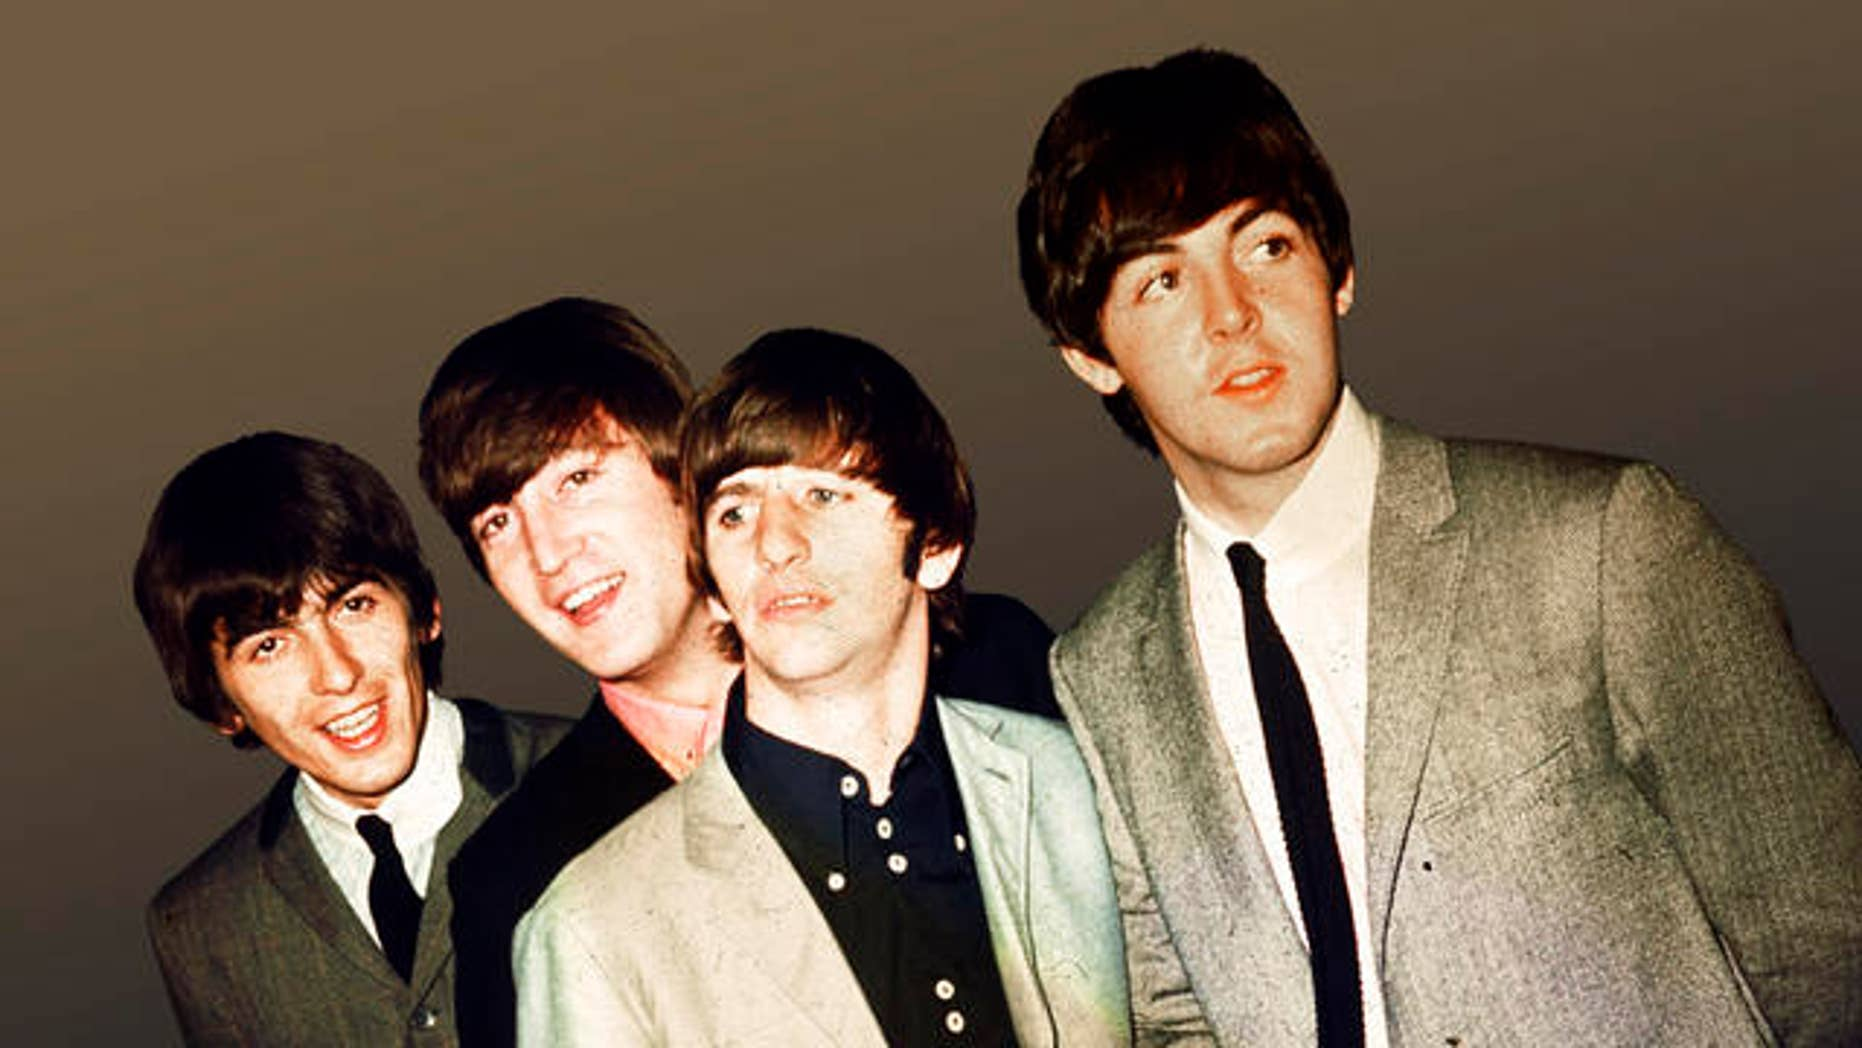 Ringo Starr, seen here second from right with his Beatles bandmates during their playing days, celebrated his 72nd birthday in Nashville Saturday.